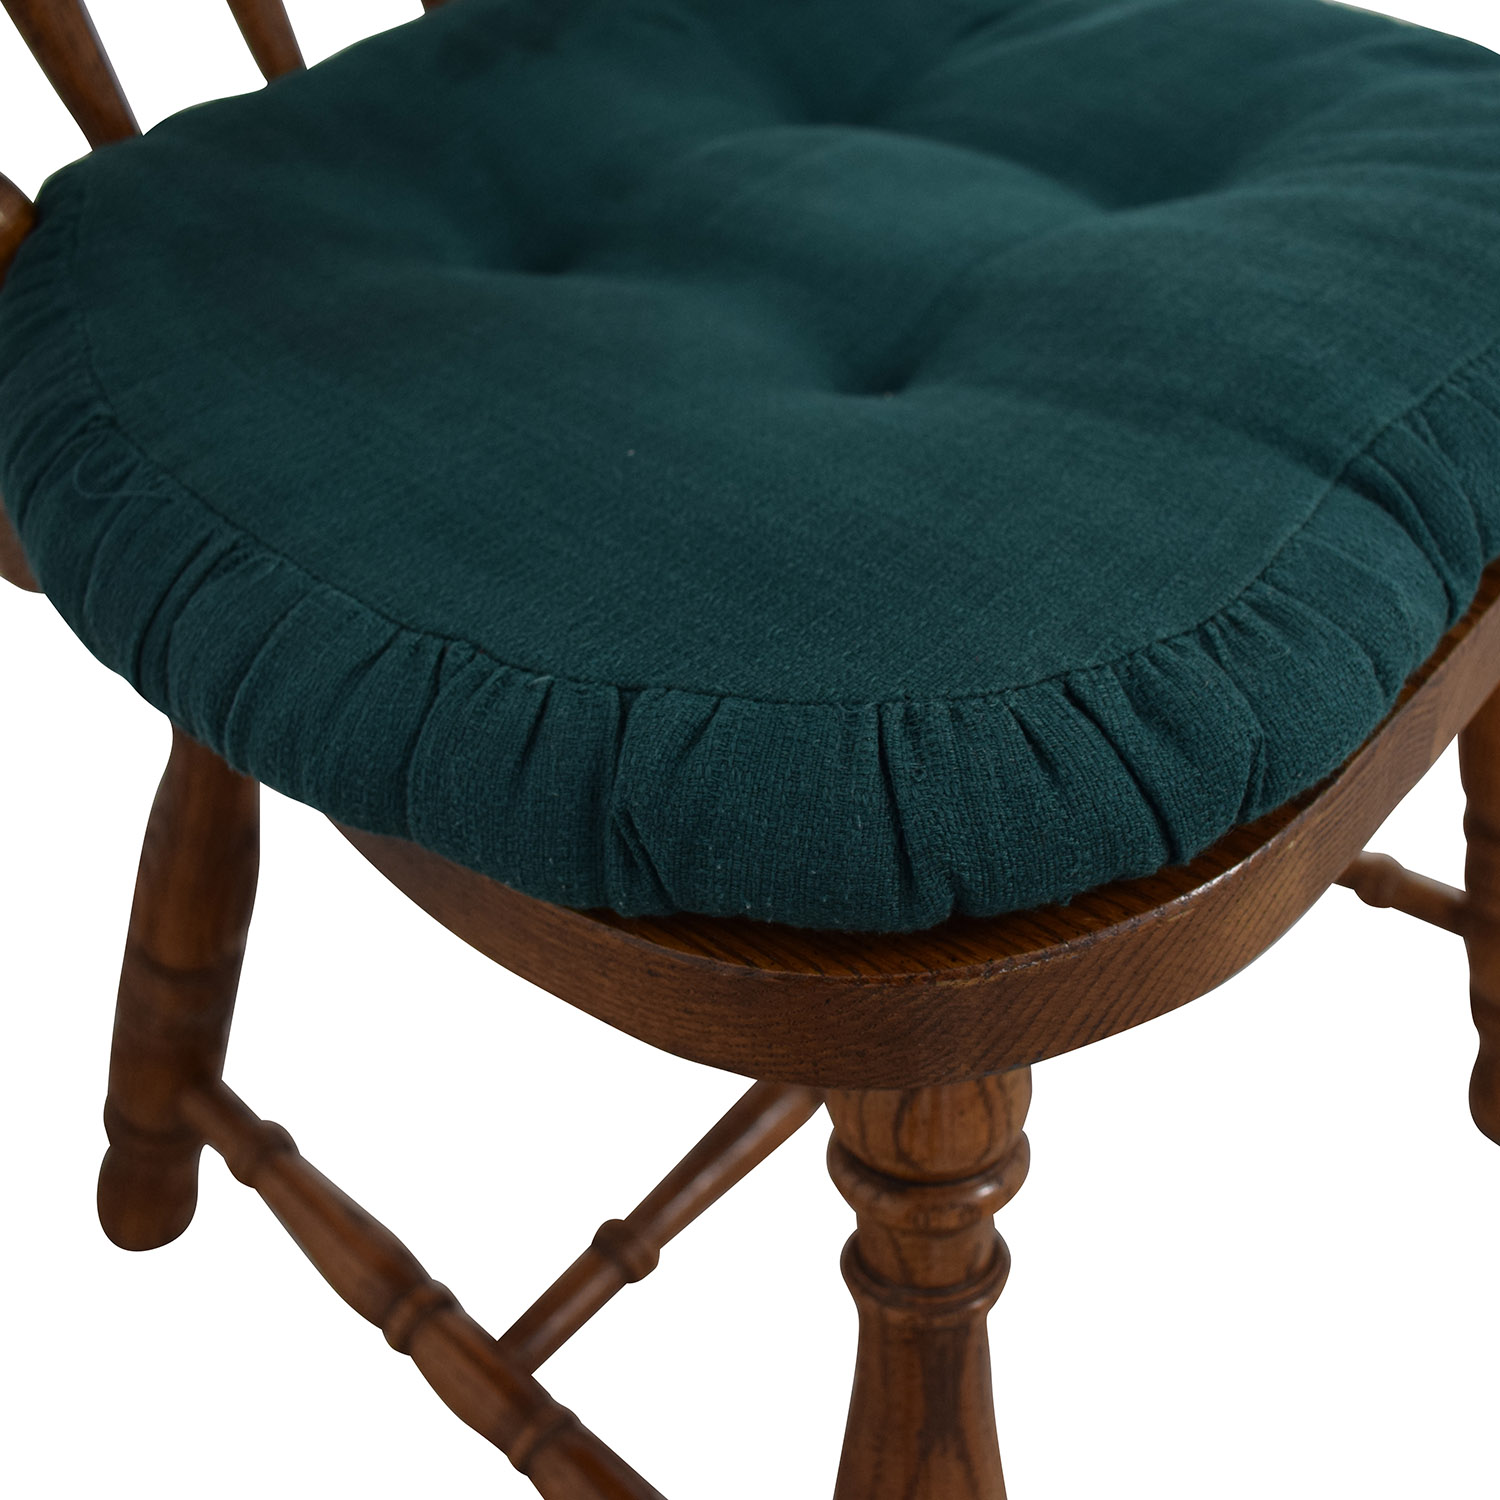 Wood Chair with Teal Cushion Dinner Tables